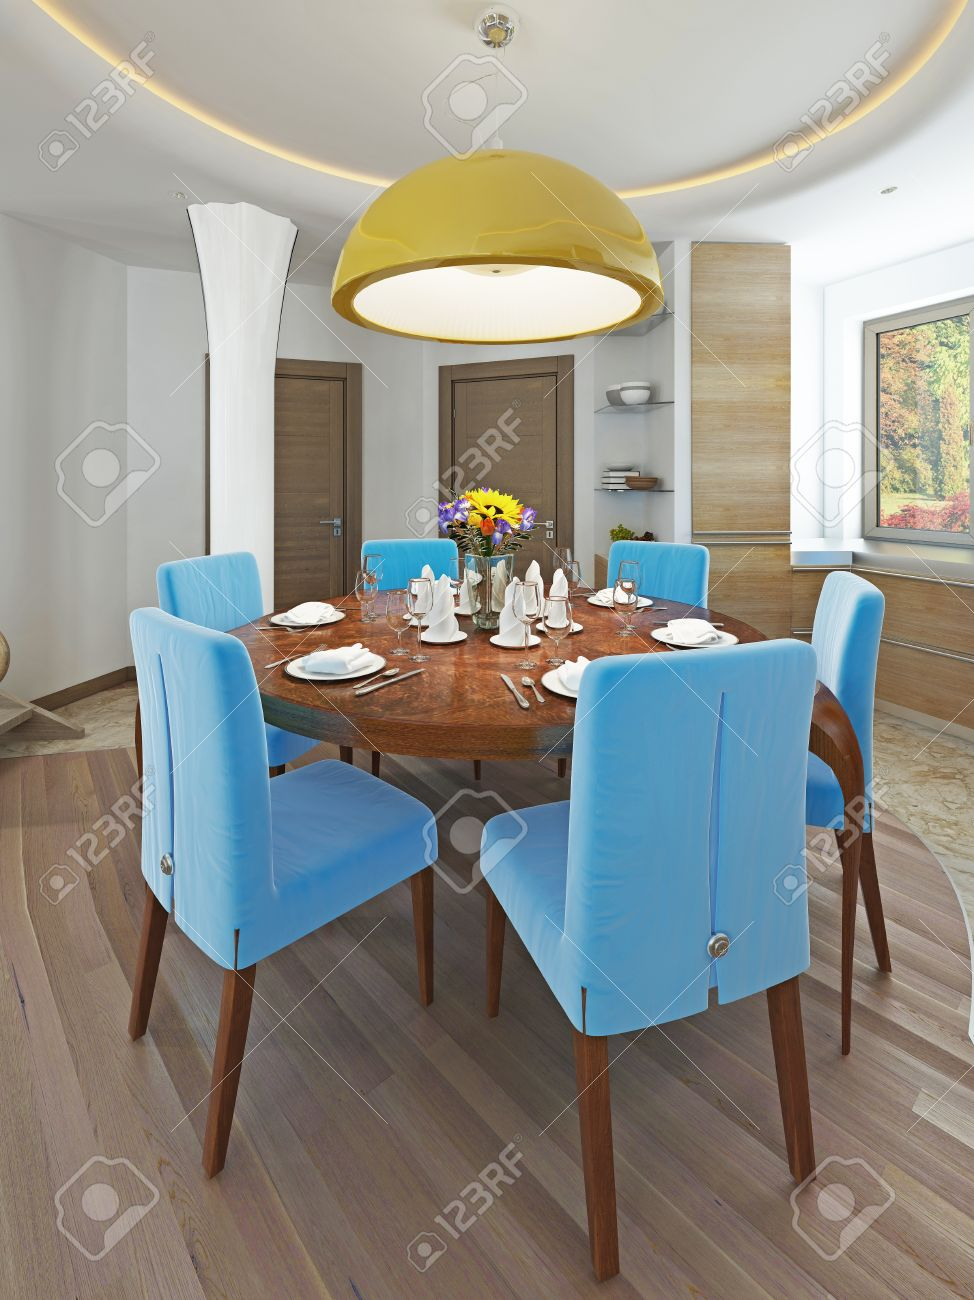 Modern Dining Room With Kitchen In A Trendy Style Kitsch. Round ...